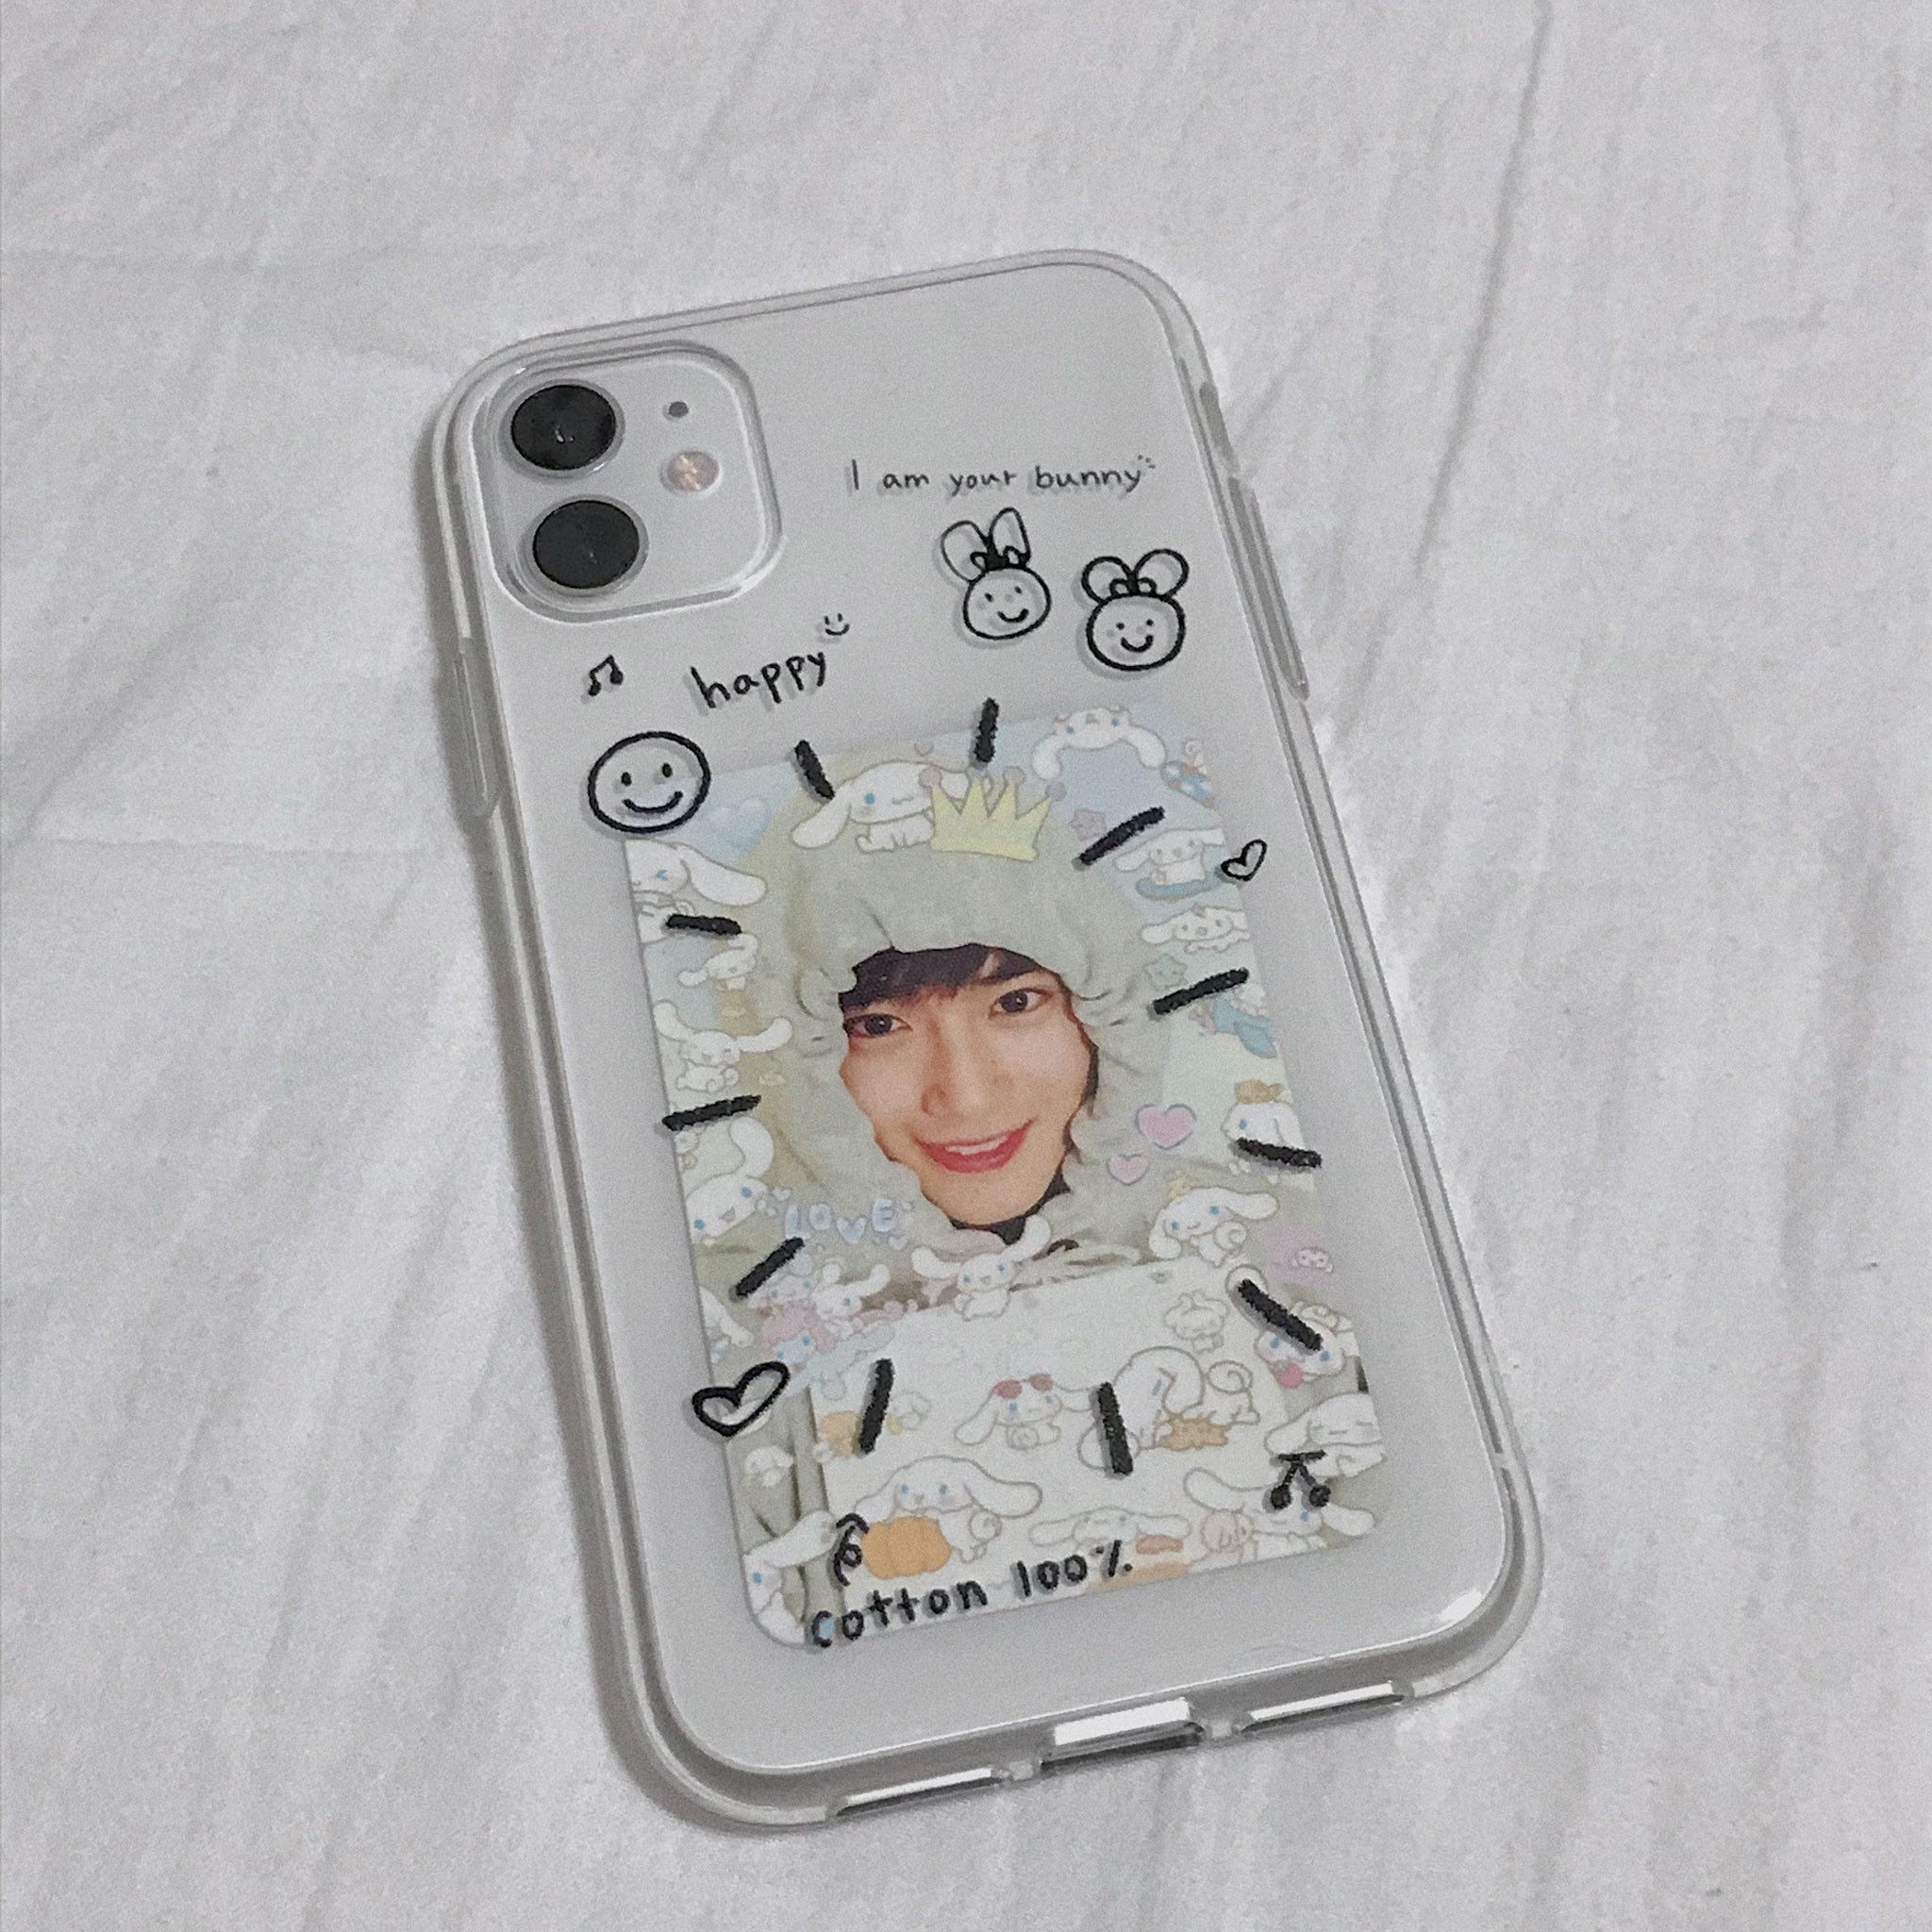 Pin By Leeo On Exo Phone Caseˊˎ In 2020 Exo Phone Case Kpop Phone Cases Aesthetic Phone Case